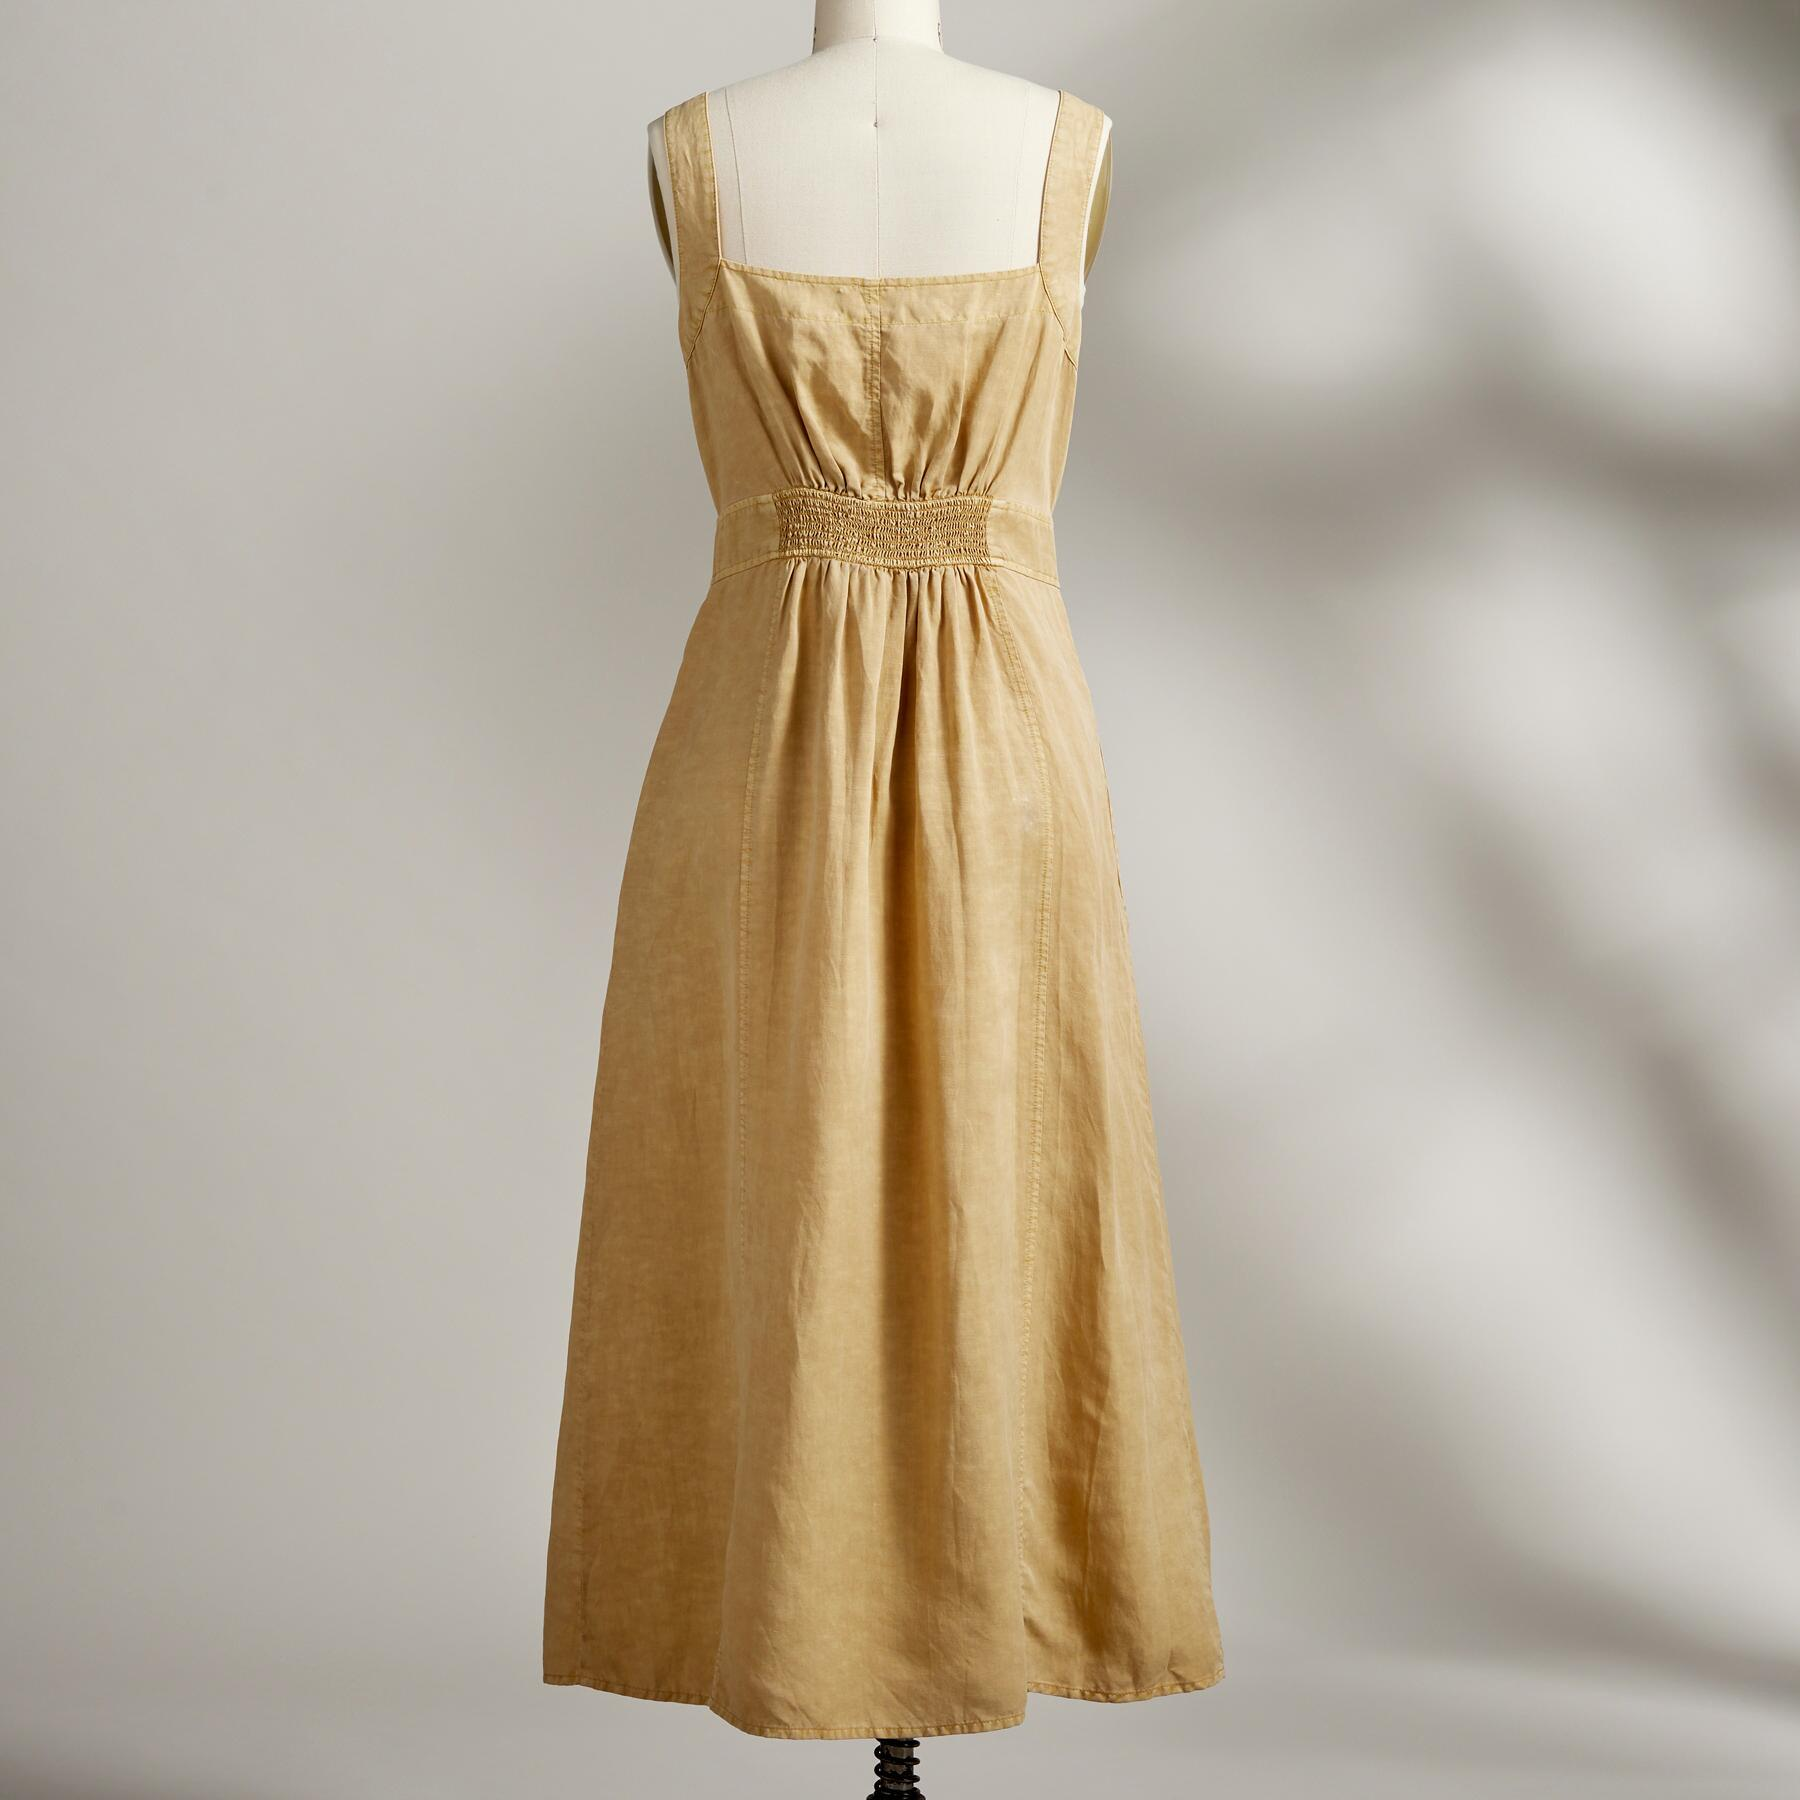 COLONIAL DRESS: View 3